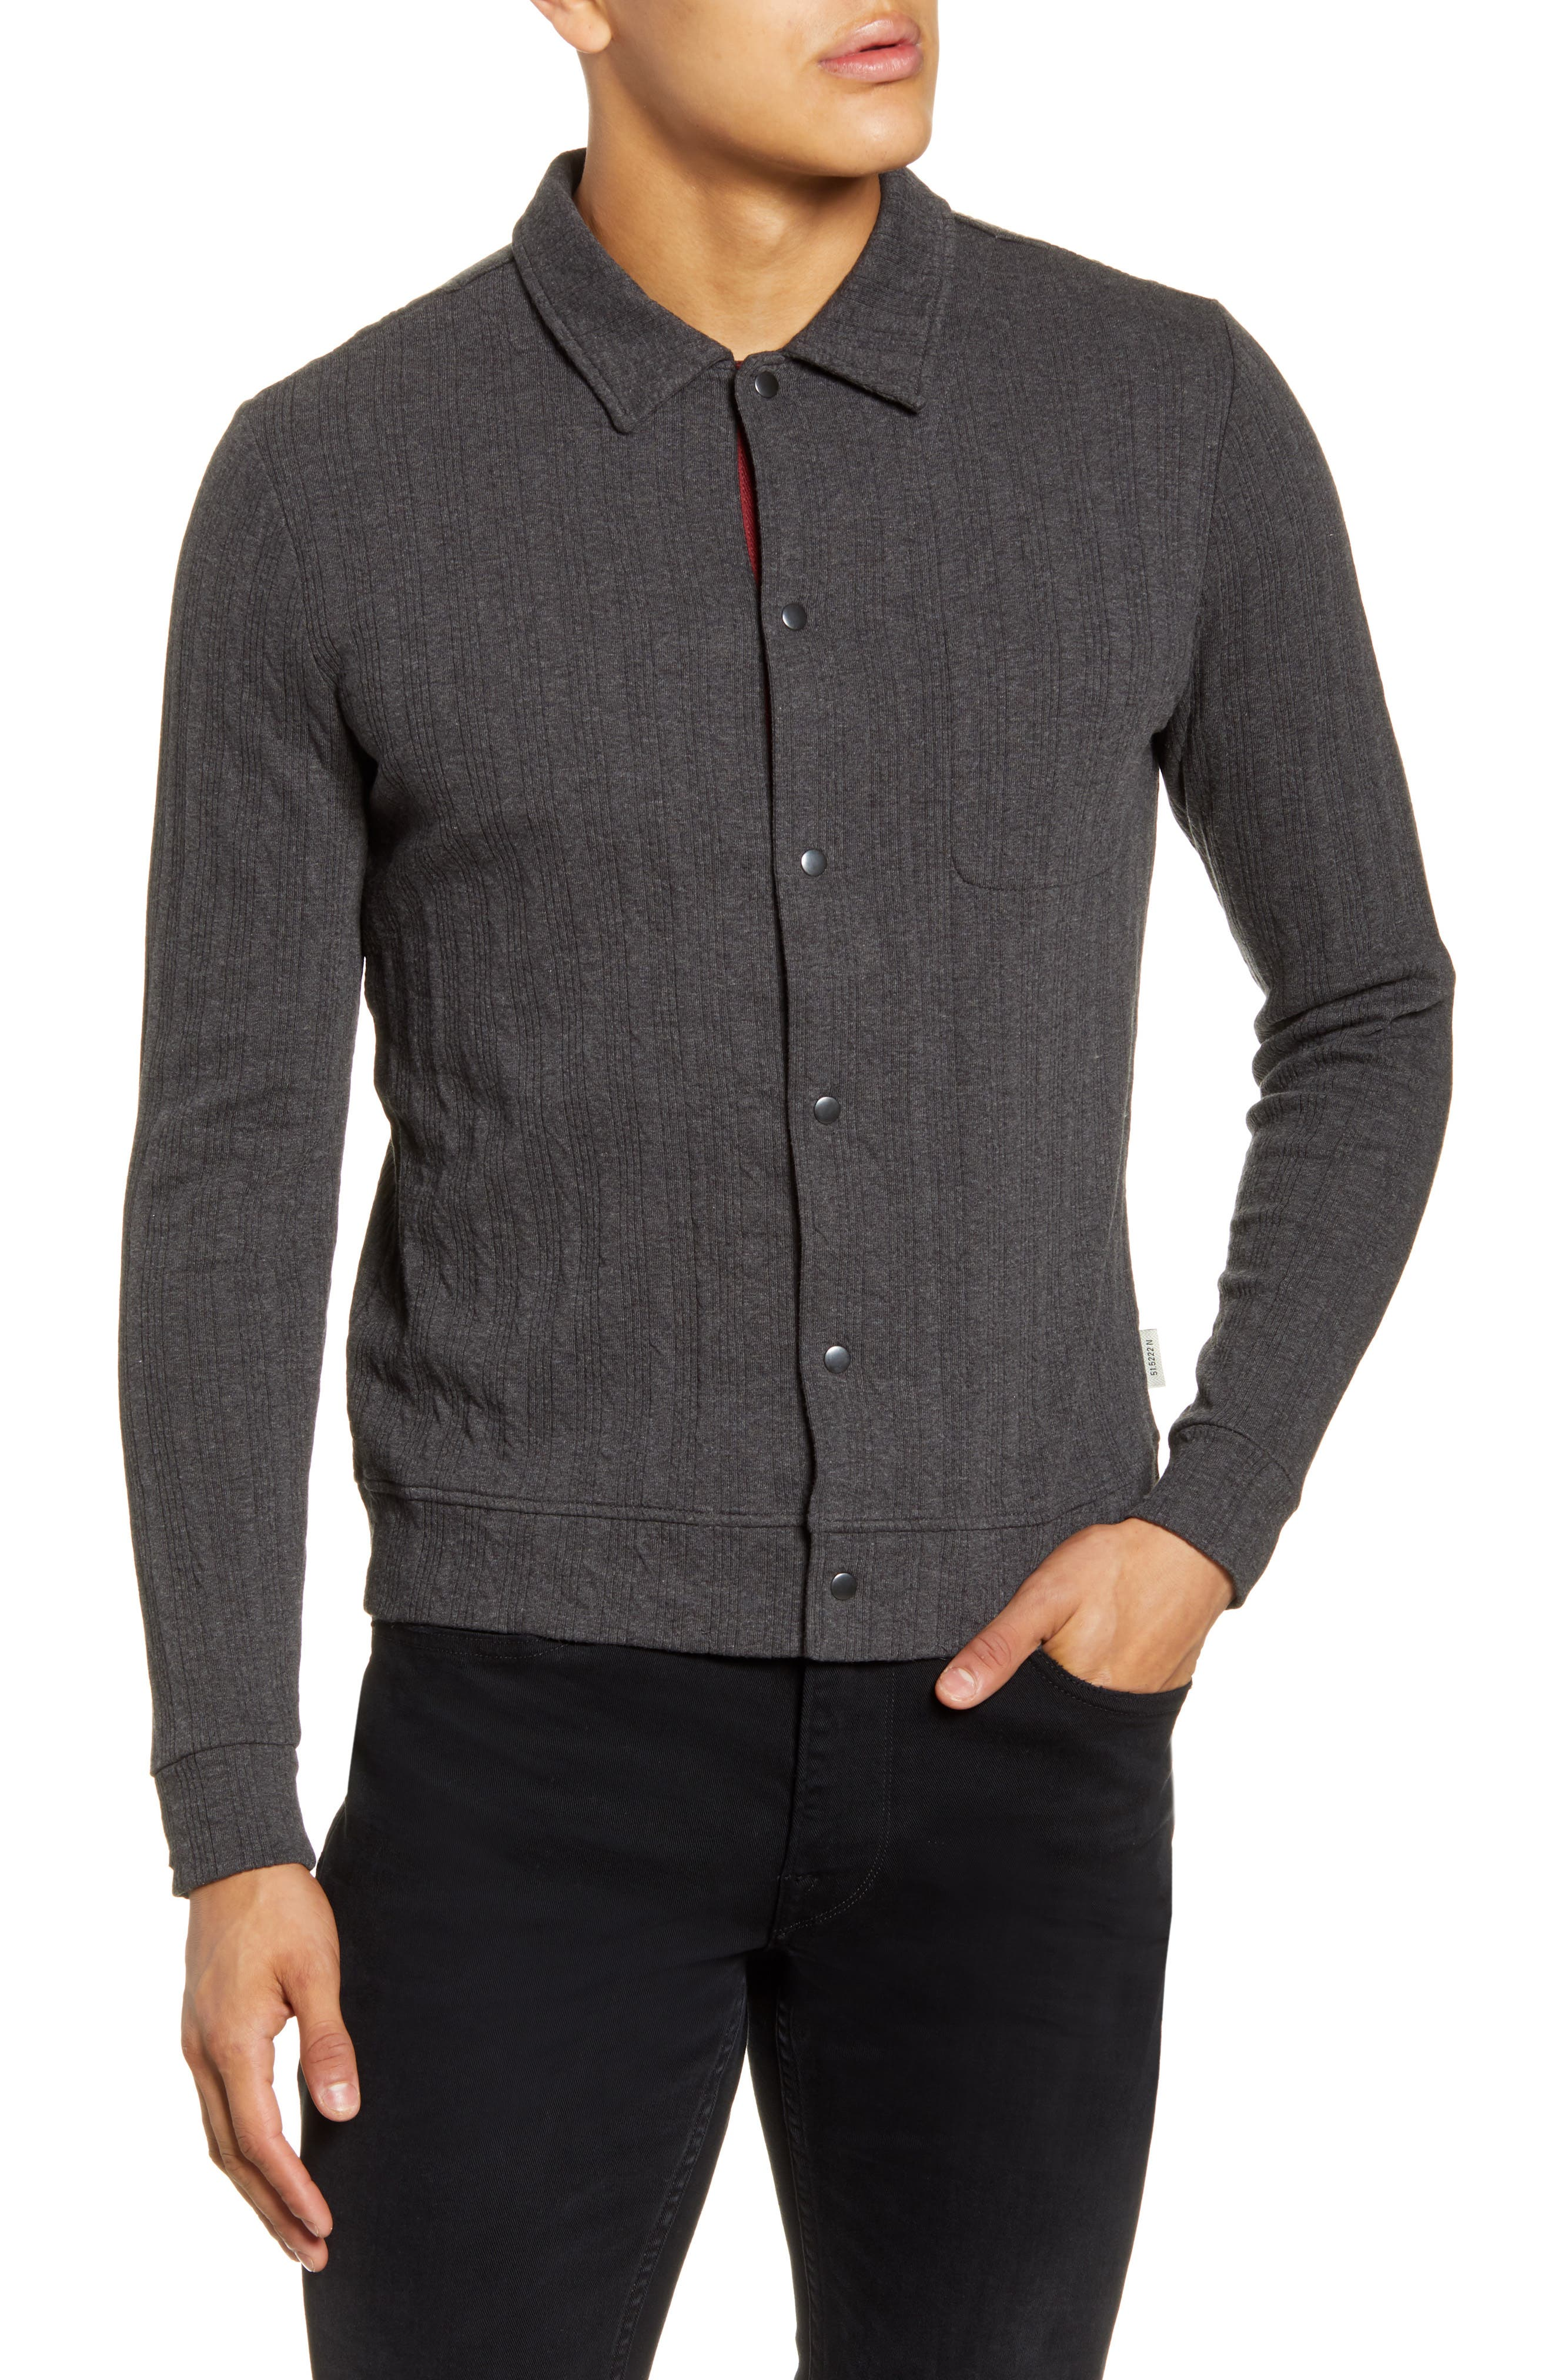 Rundell Slim Fit Snap Front Organic Cotton Jacket by Oliver Spencer